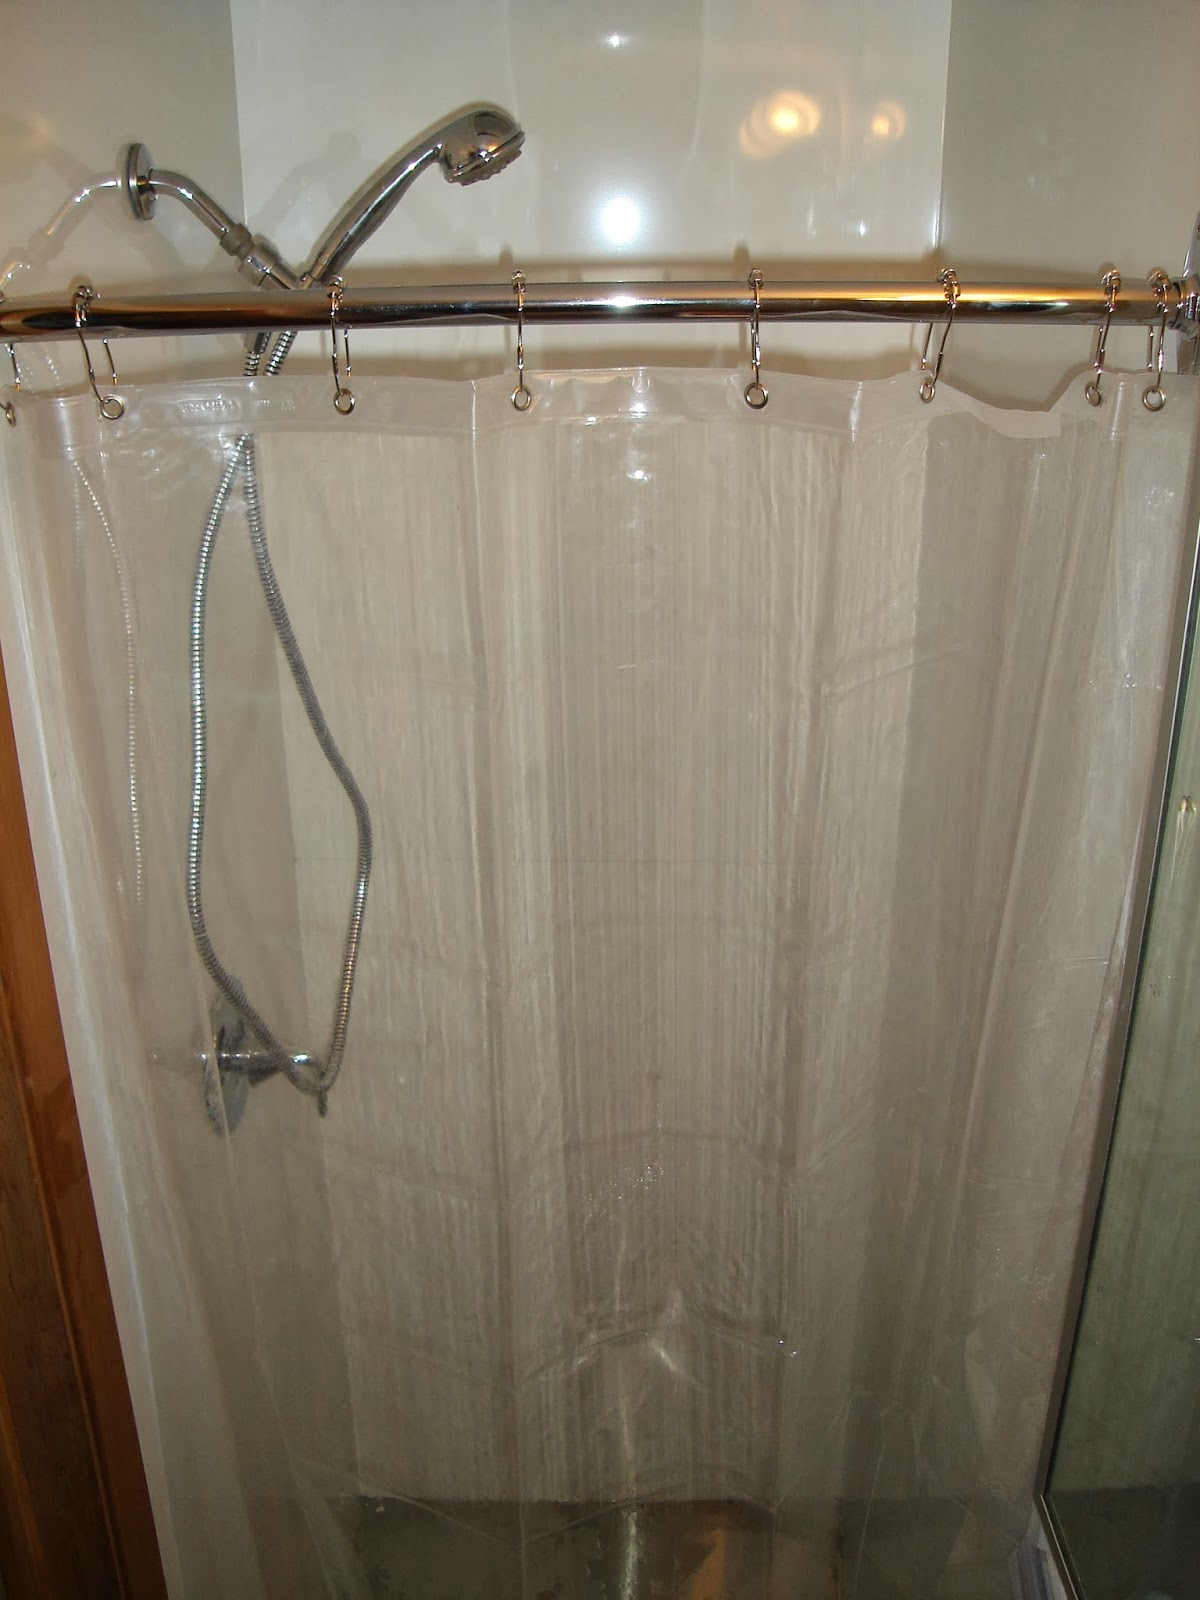 split shower curtain ideas. The Shower Curtain Is This EVA Non-toxic One (had A Slight Plastic Smell But Was Fine For Me) (other Options To Try Are Polyester Or Polyethylene Split Ideas U